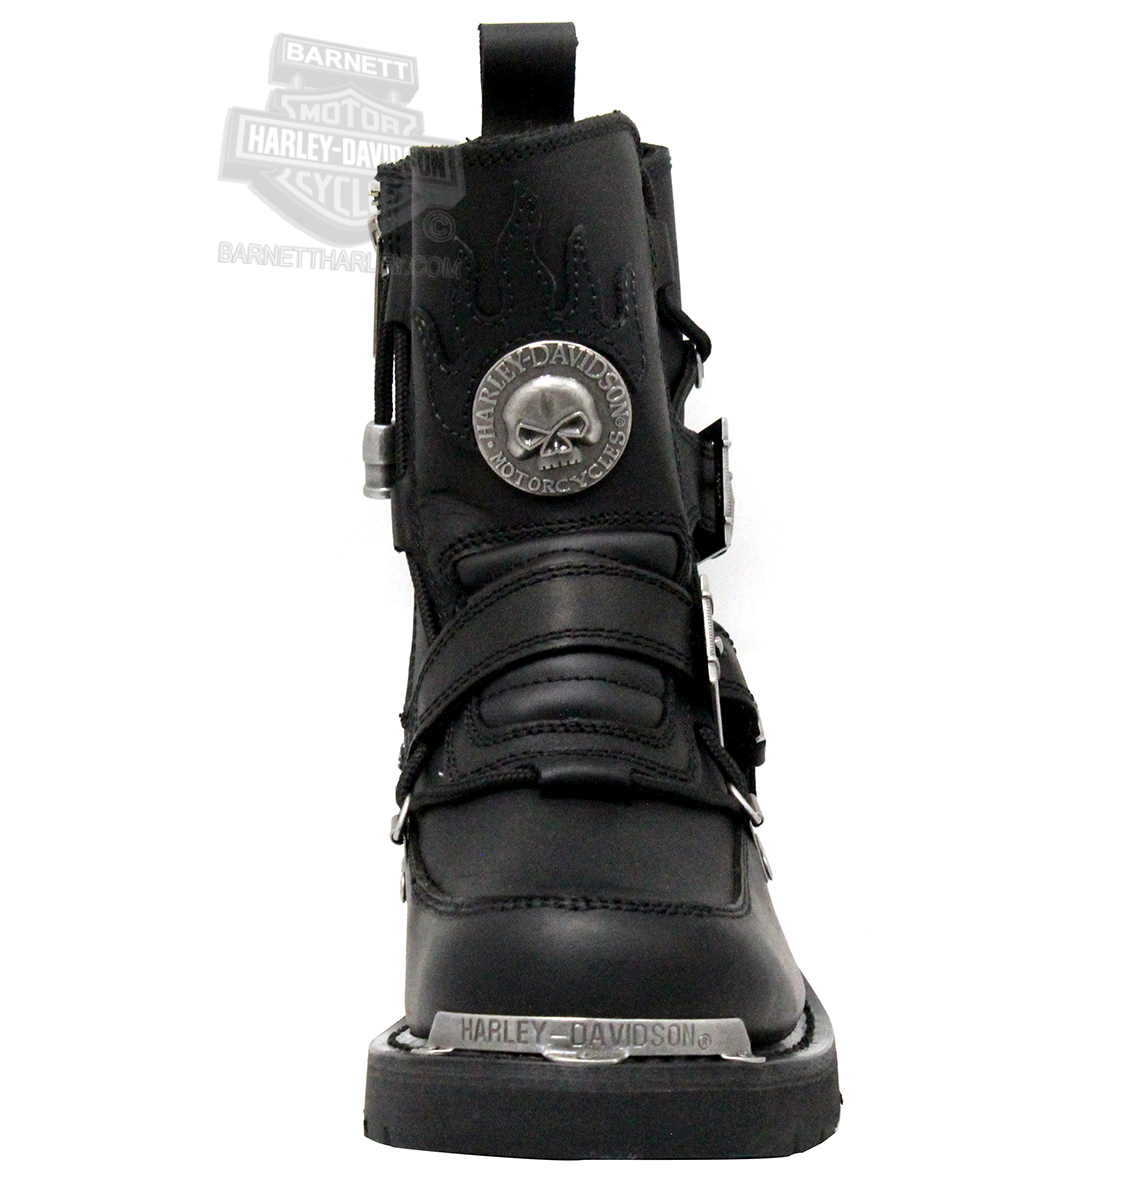 d48eac9c97dd7f 94167 - Harley-Davidson® Mens Distortion Black Mid Cut Riding Boot ...